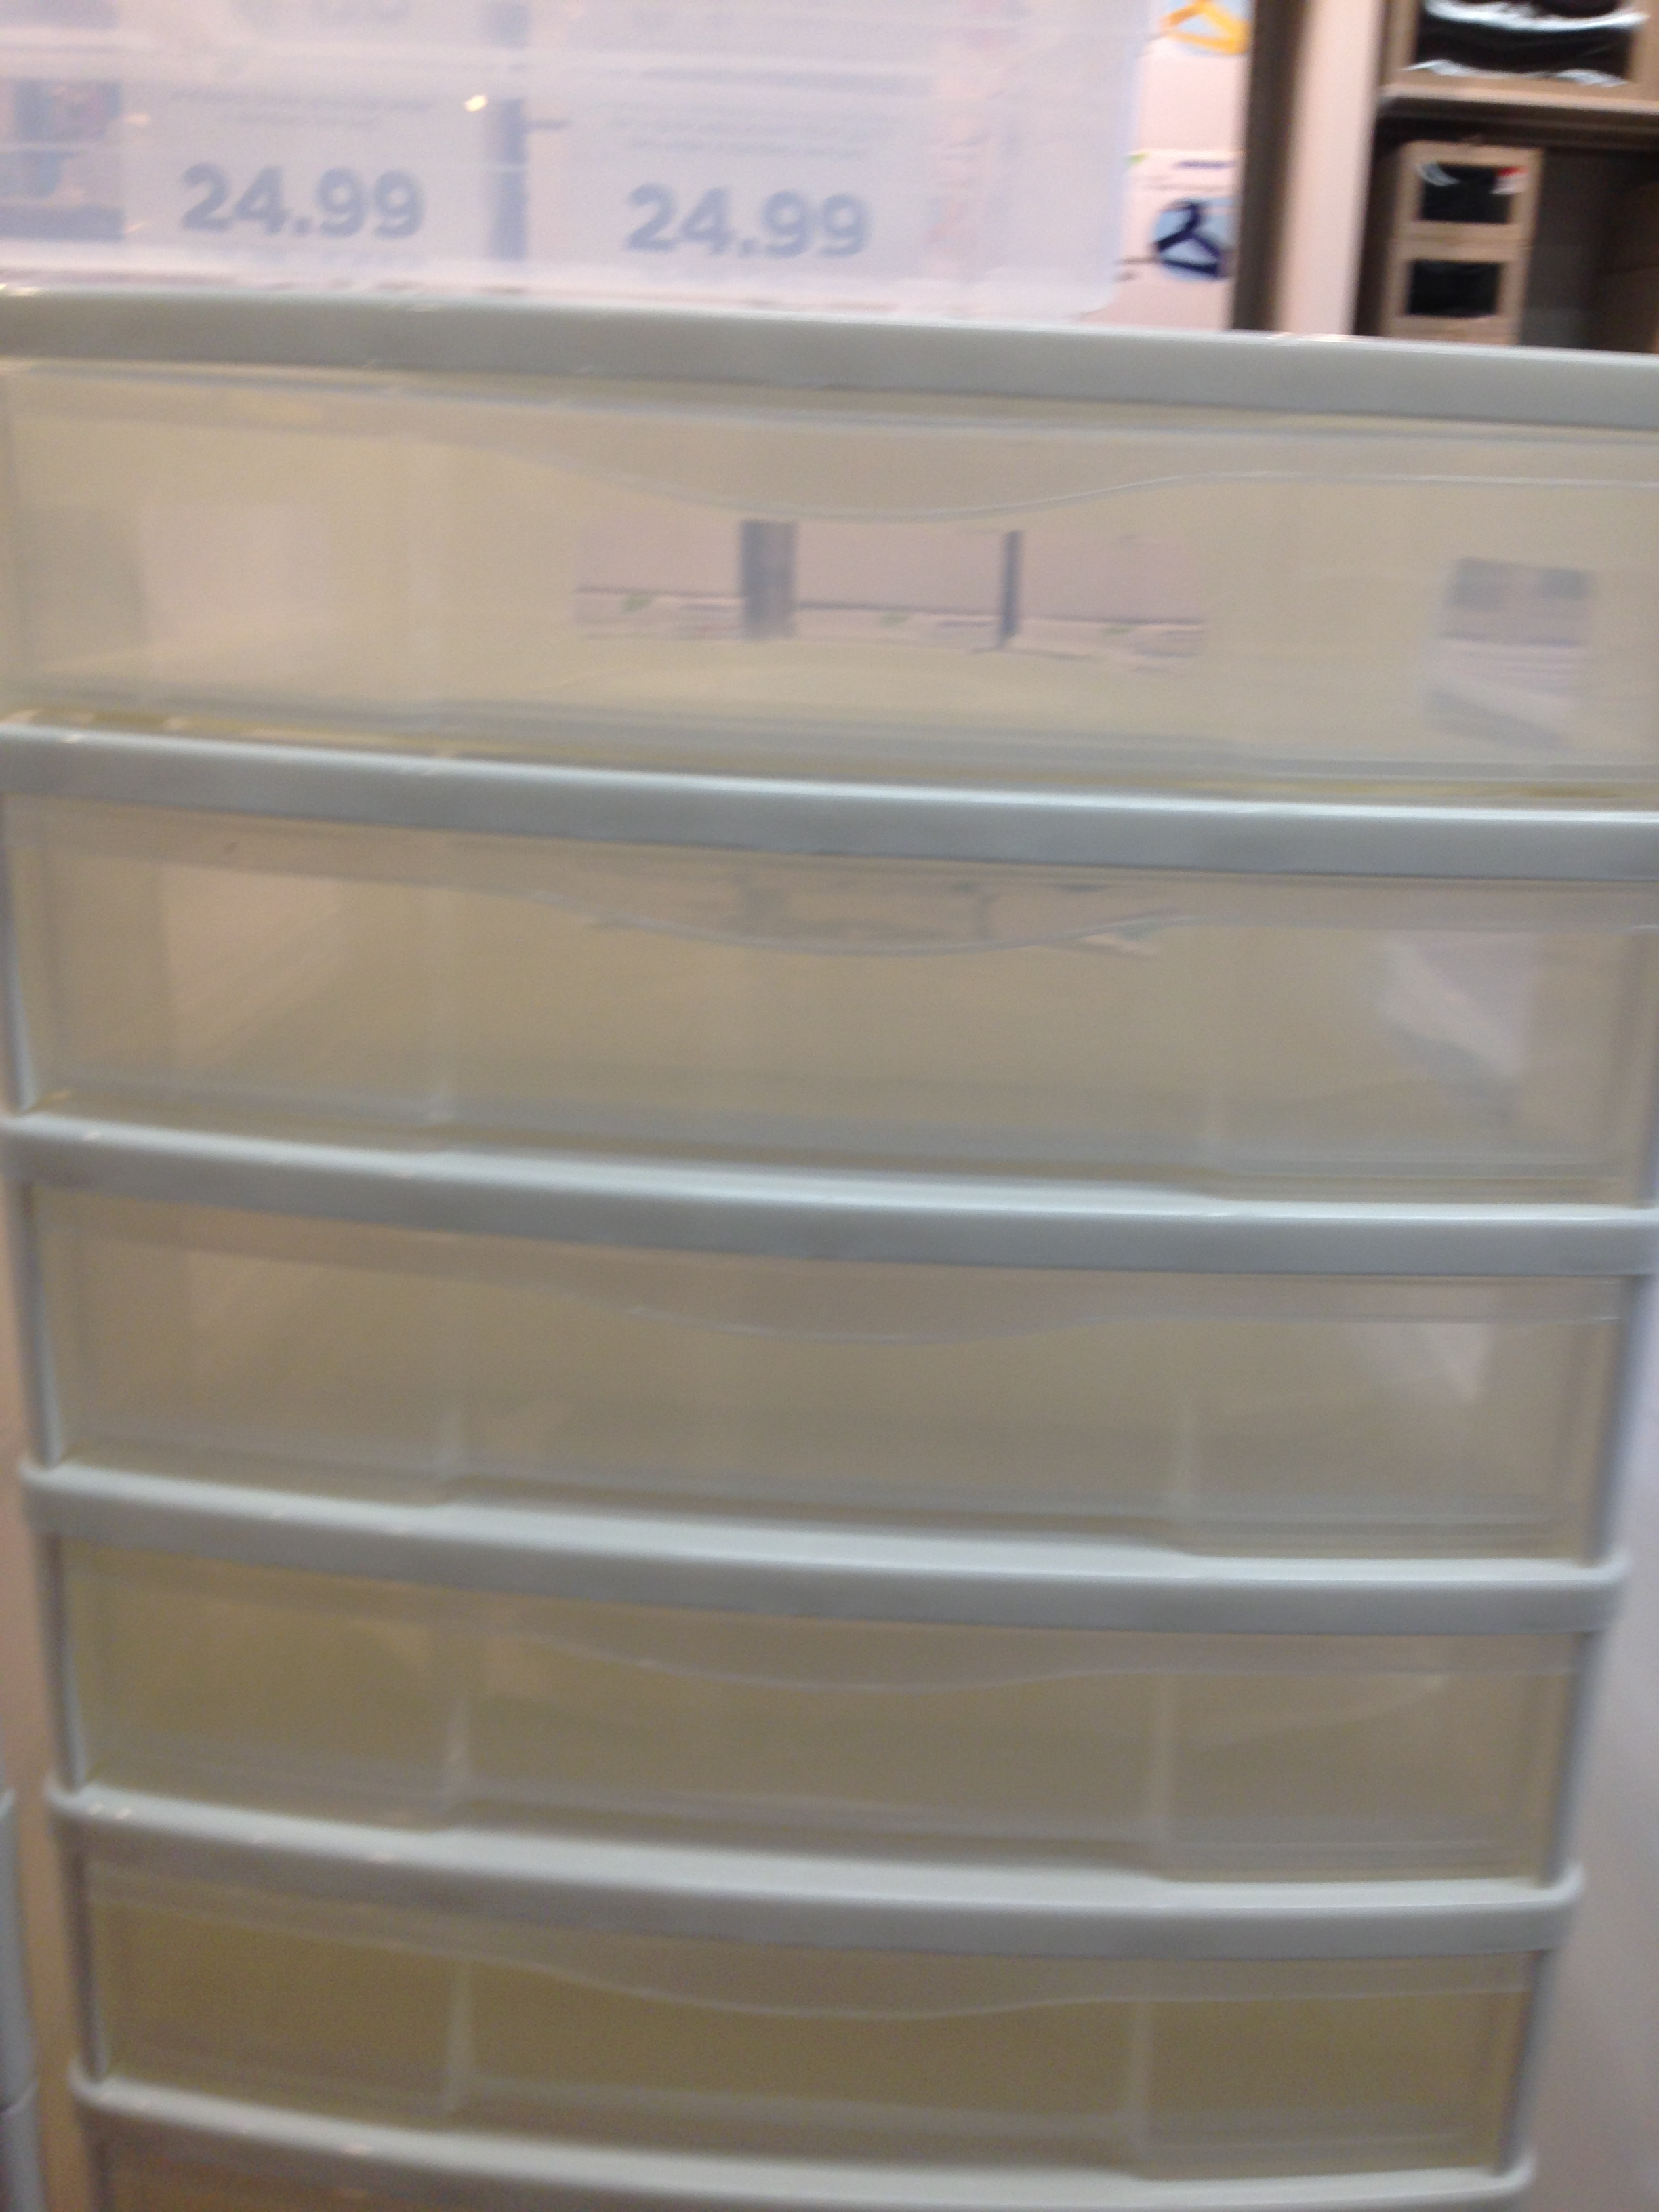 one thing we can assure you is that no dorm room comes with adequate storage space students should bring their own bins shelves boxes storage cubes and adequate storage space